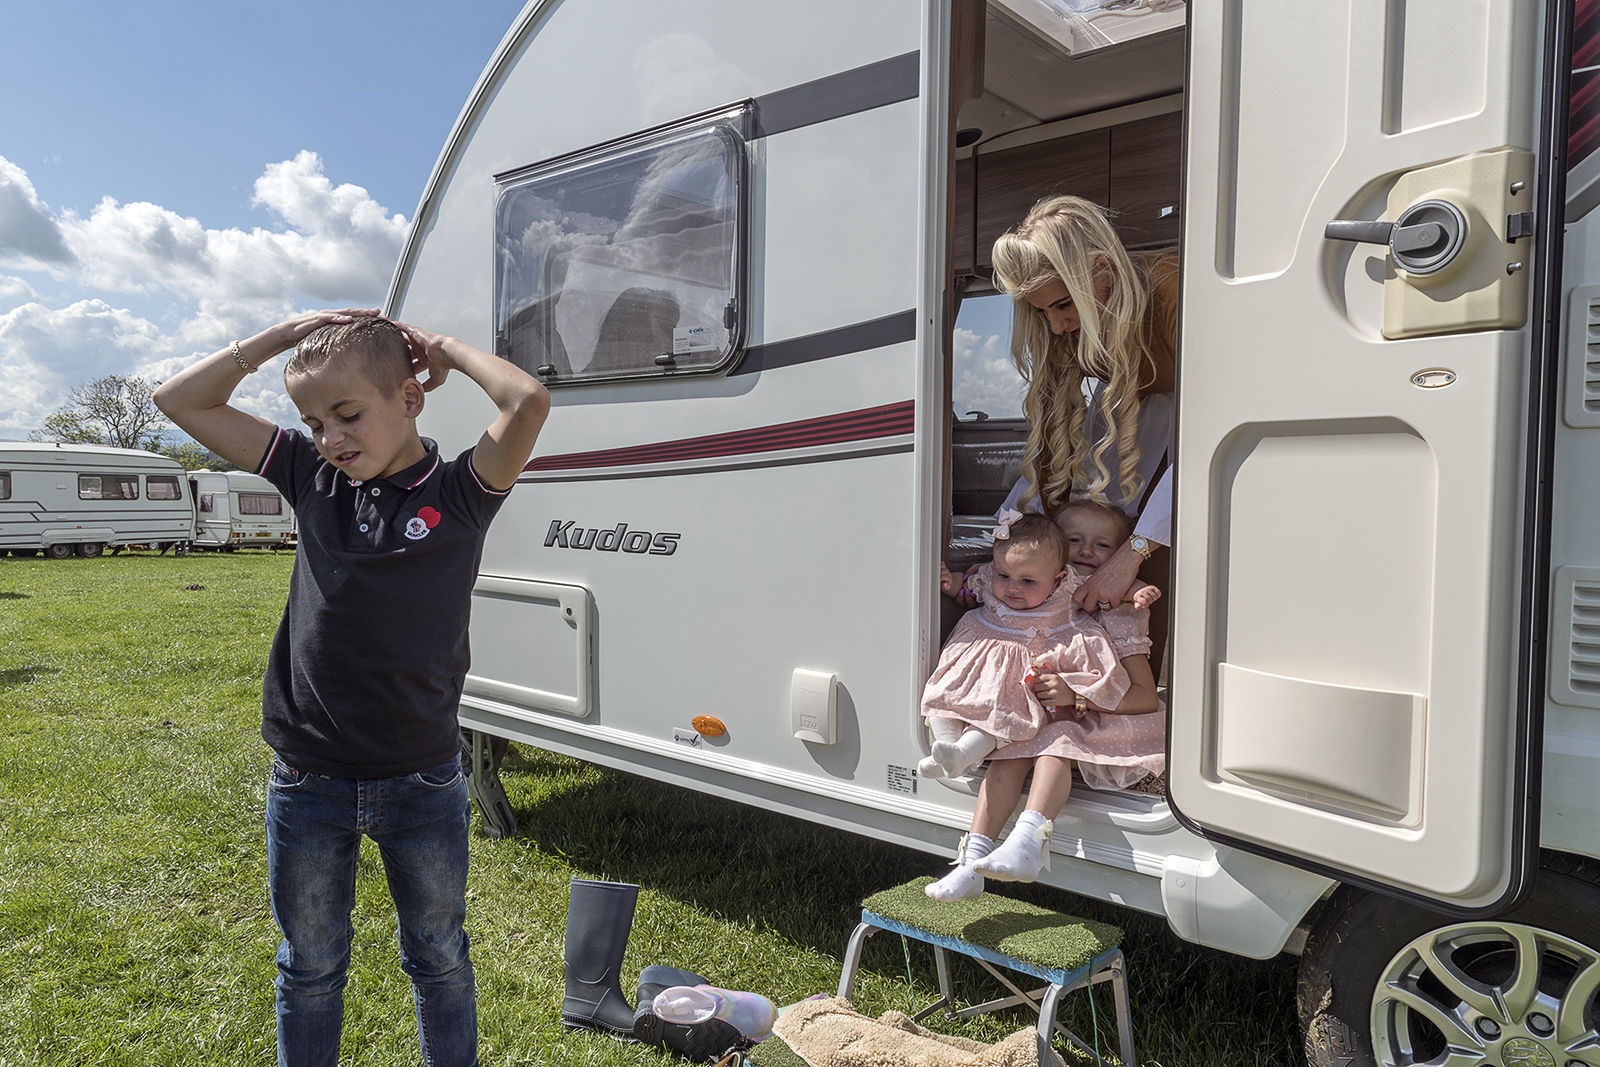 Family at Appleby Horse Fair, UK 2019